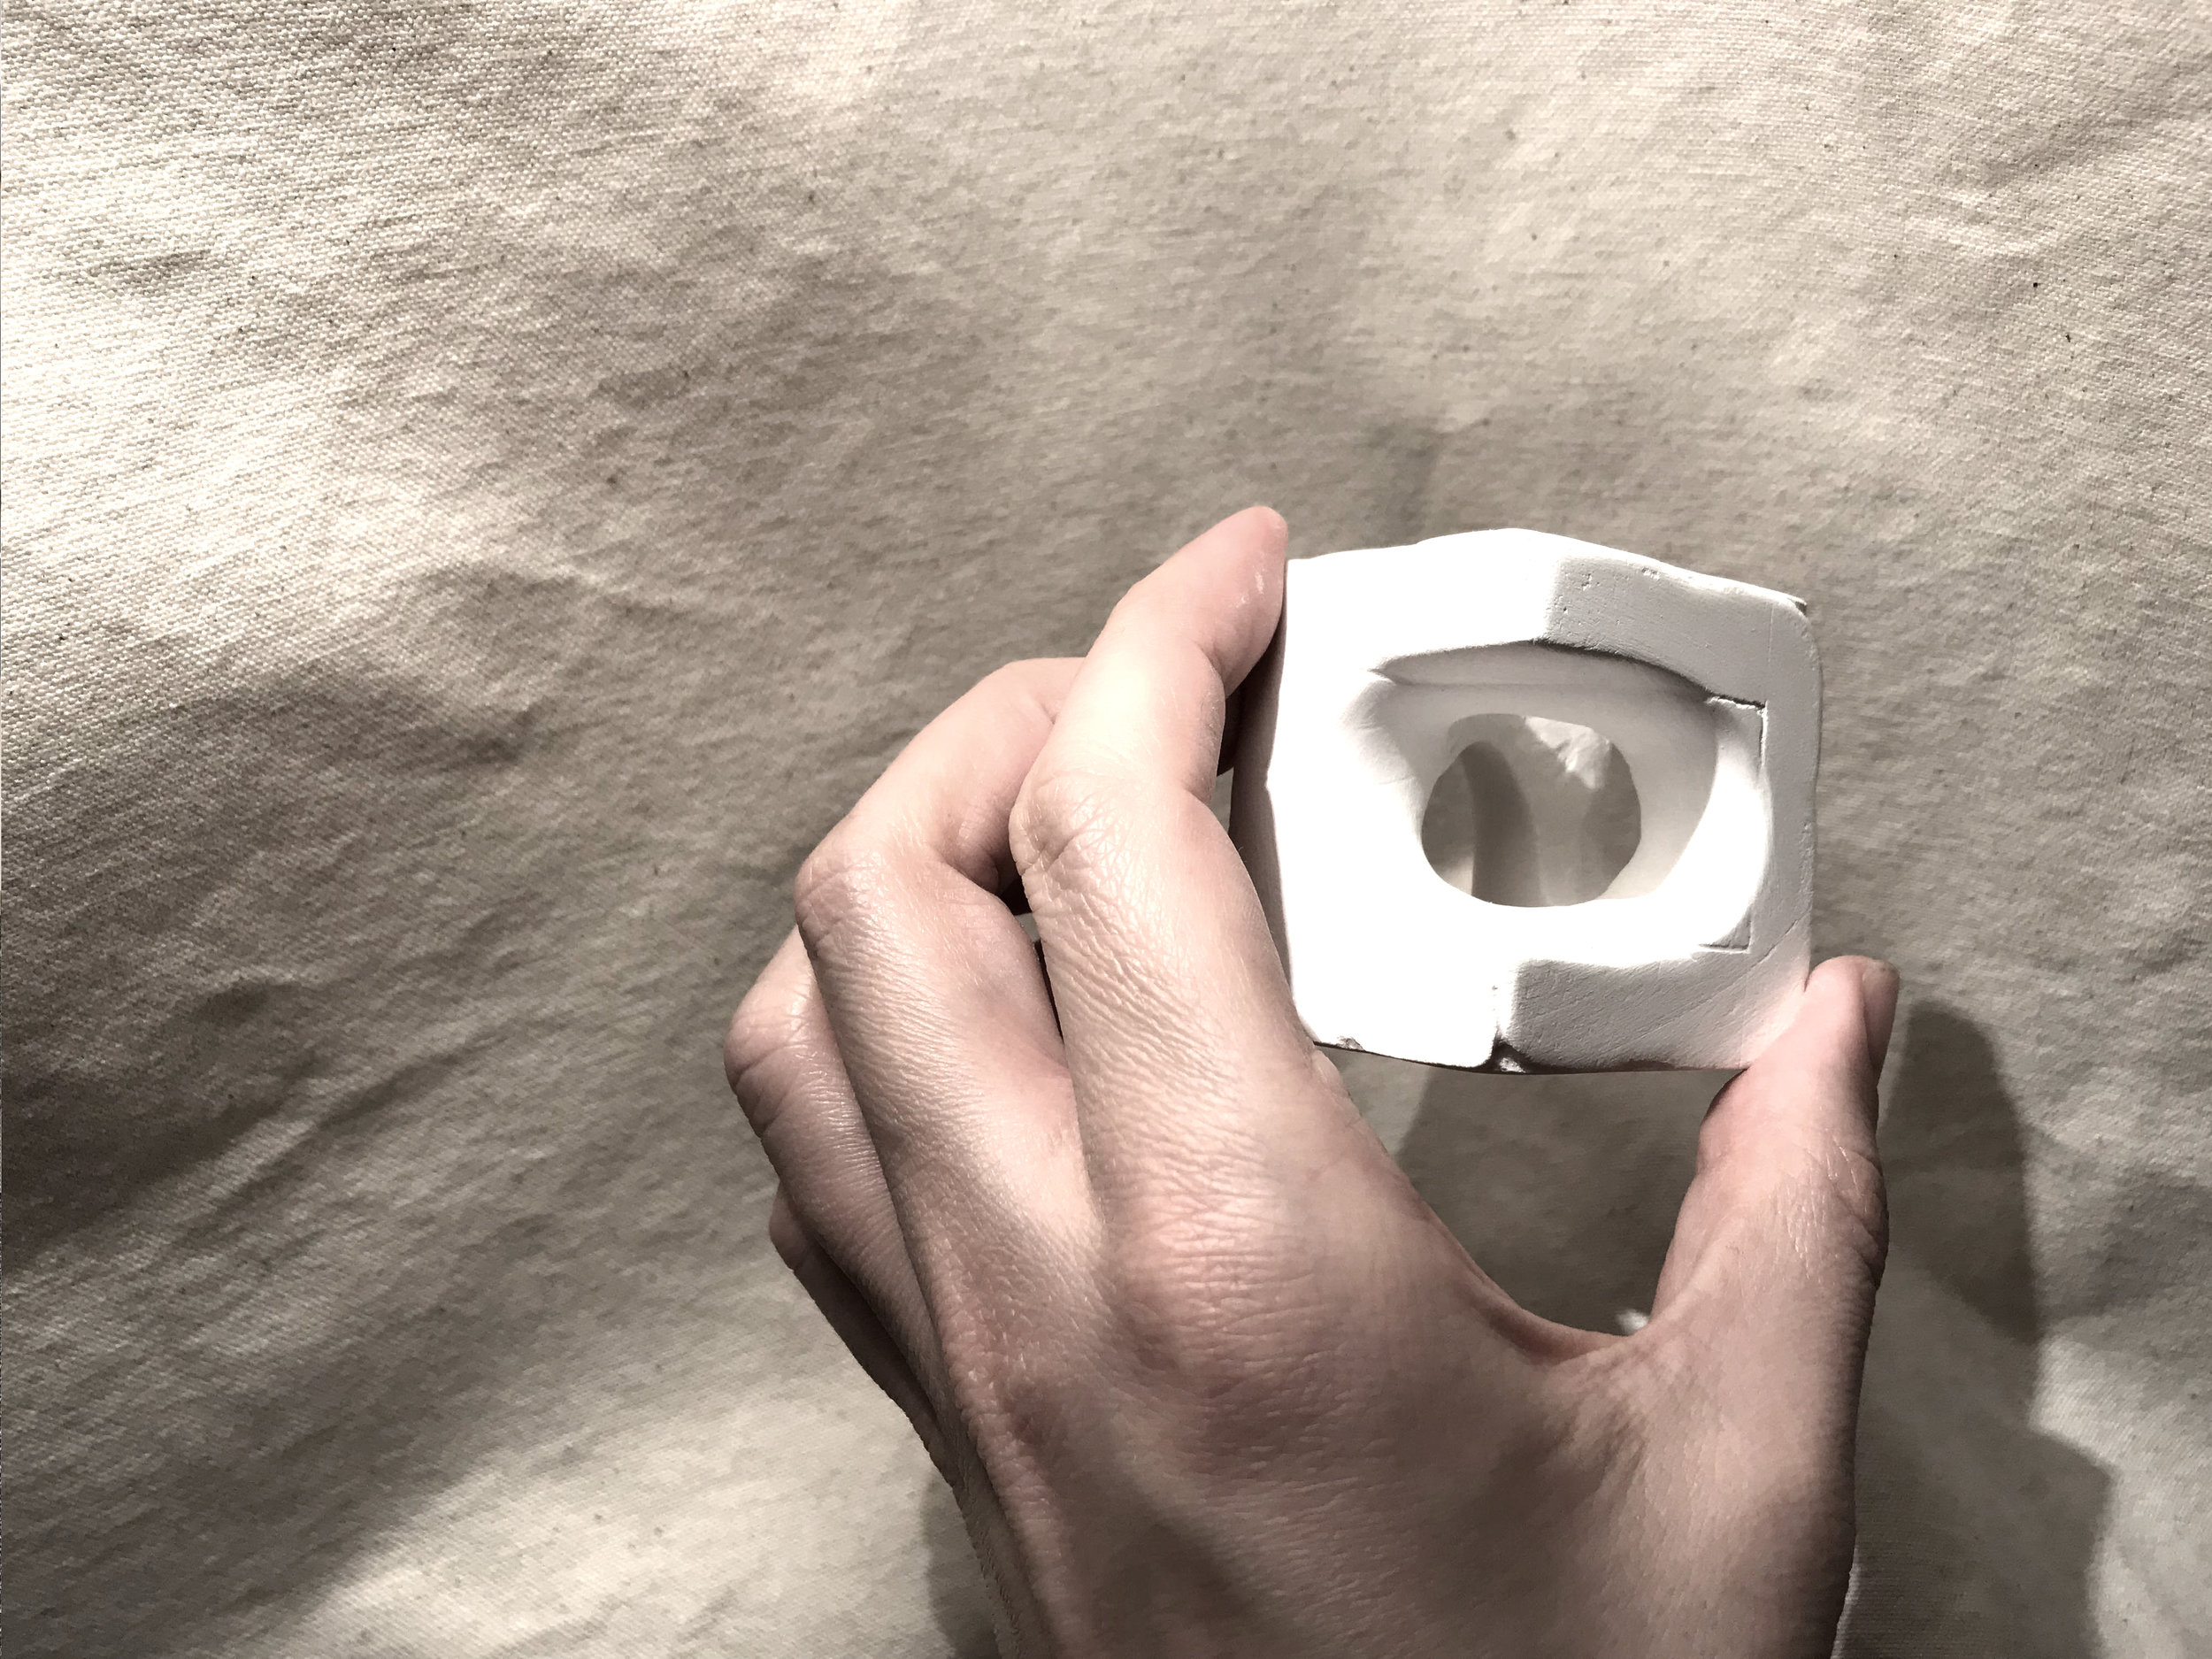 Christopher Taurasi Architecture Concrete Hollowed Cube_01.0.jpg